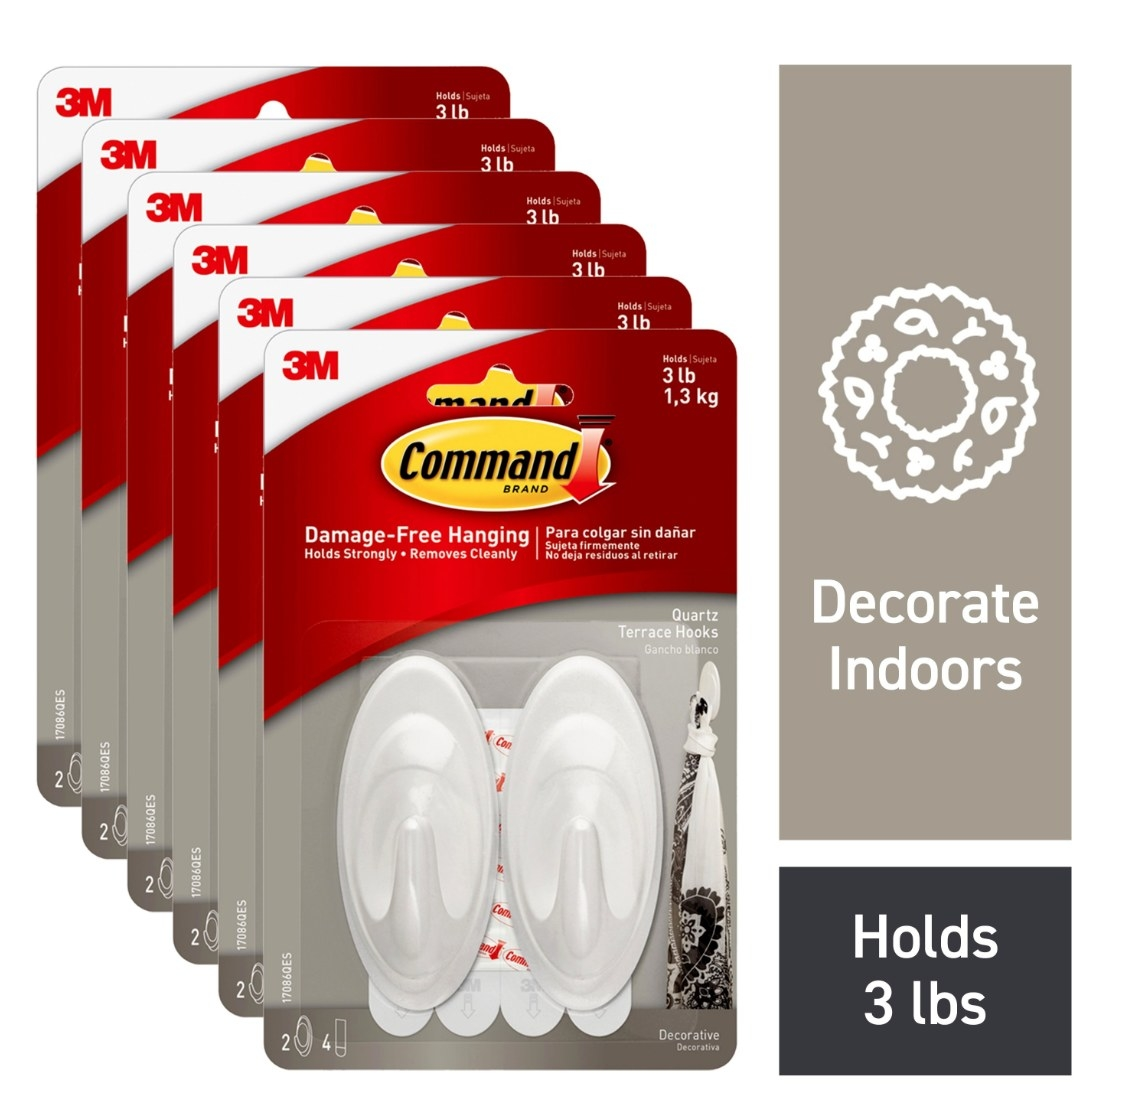 The 12 pack of command hooks in their packages